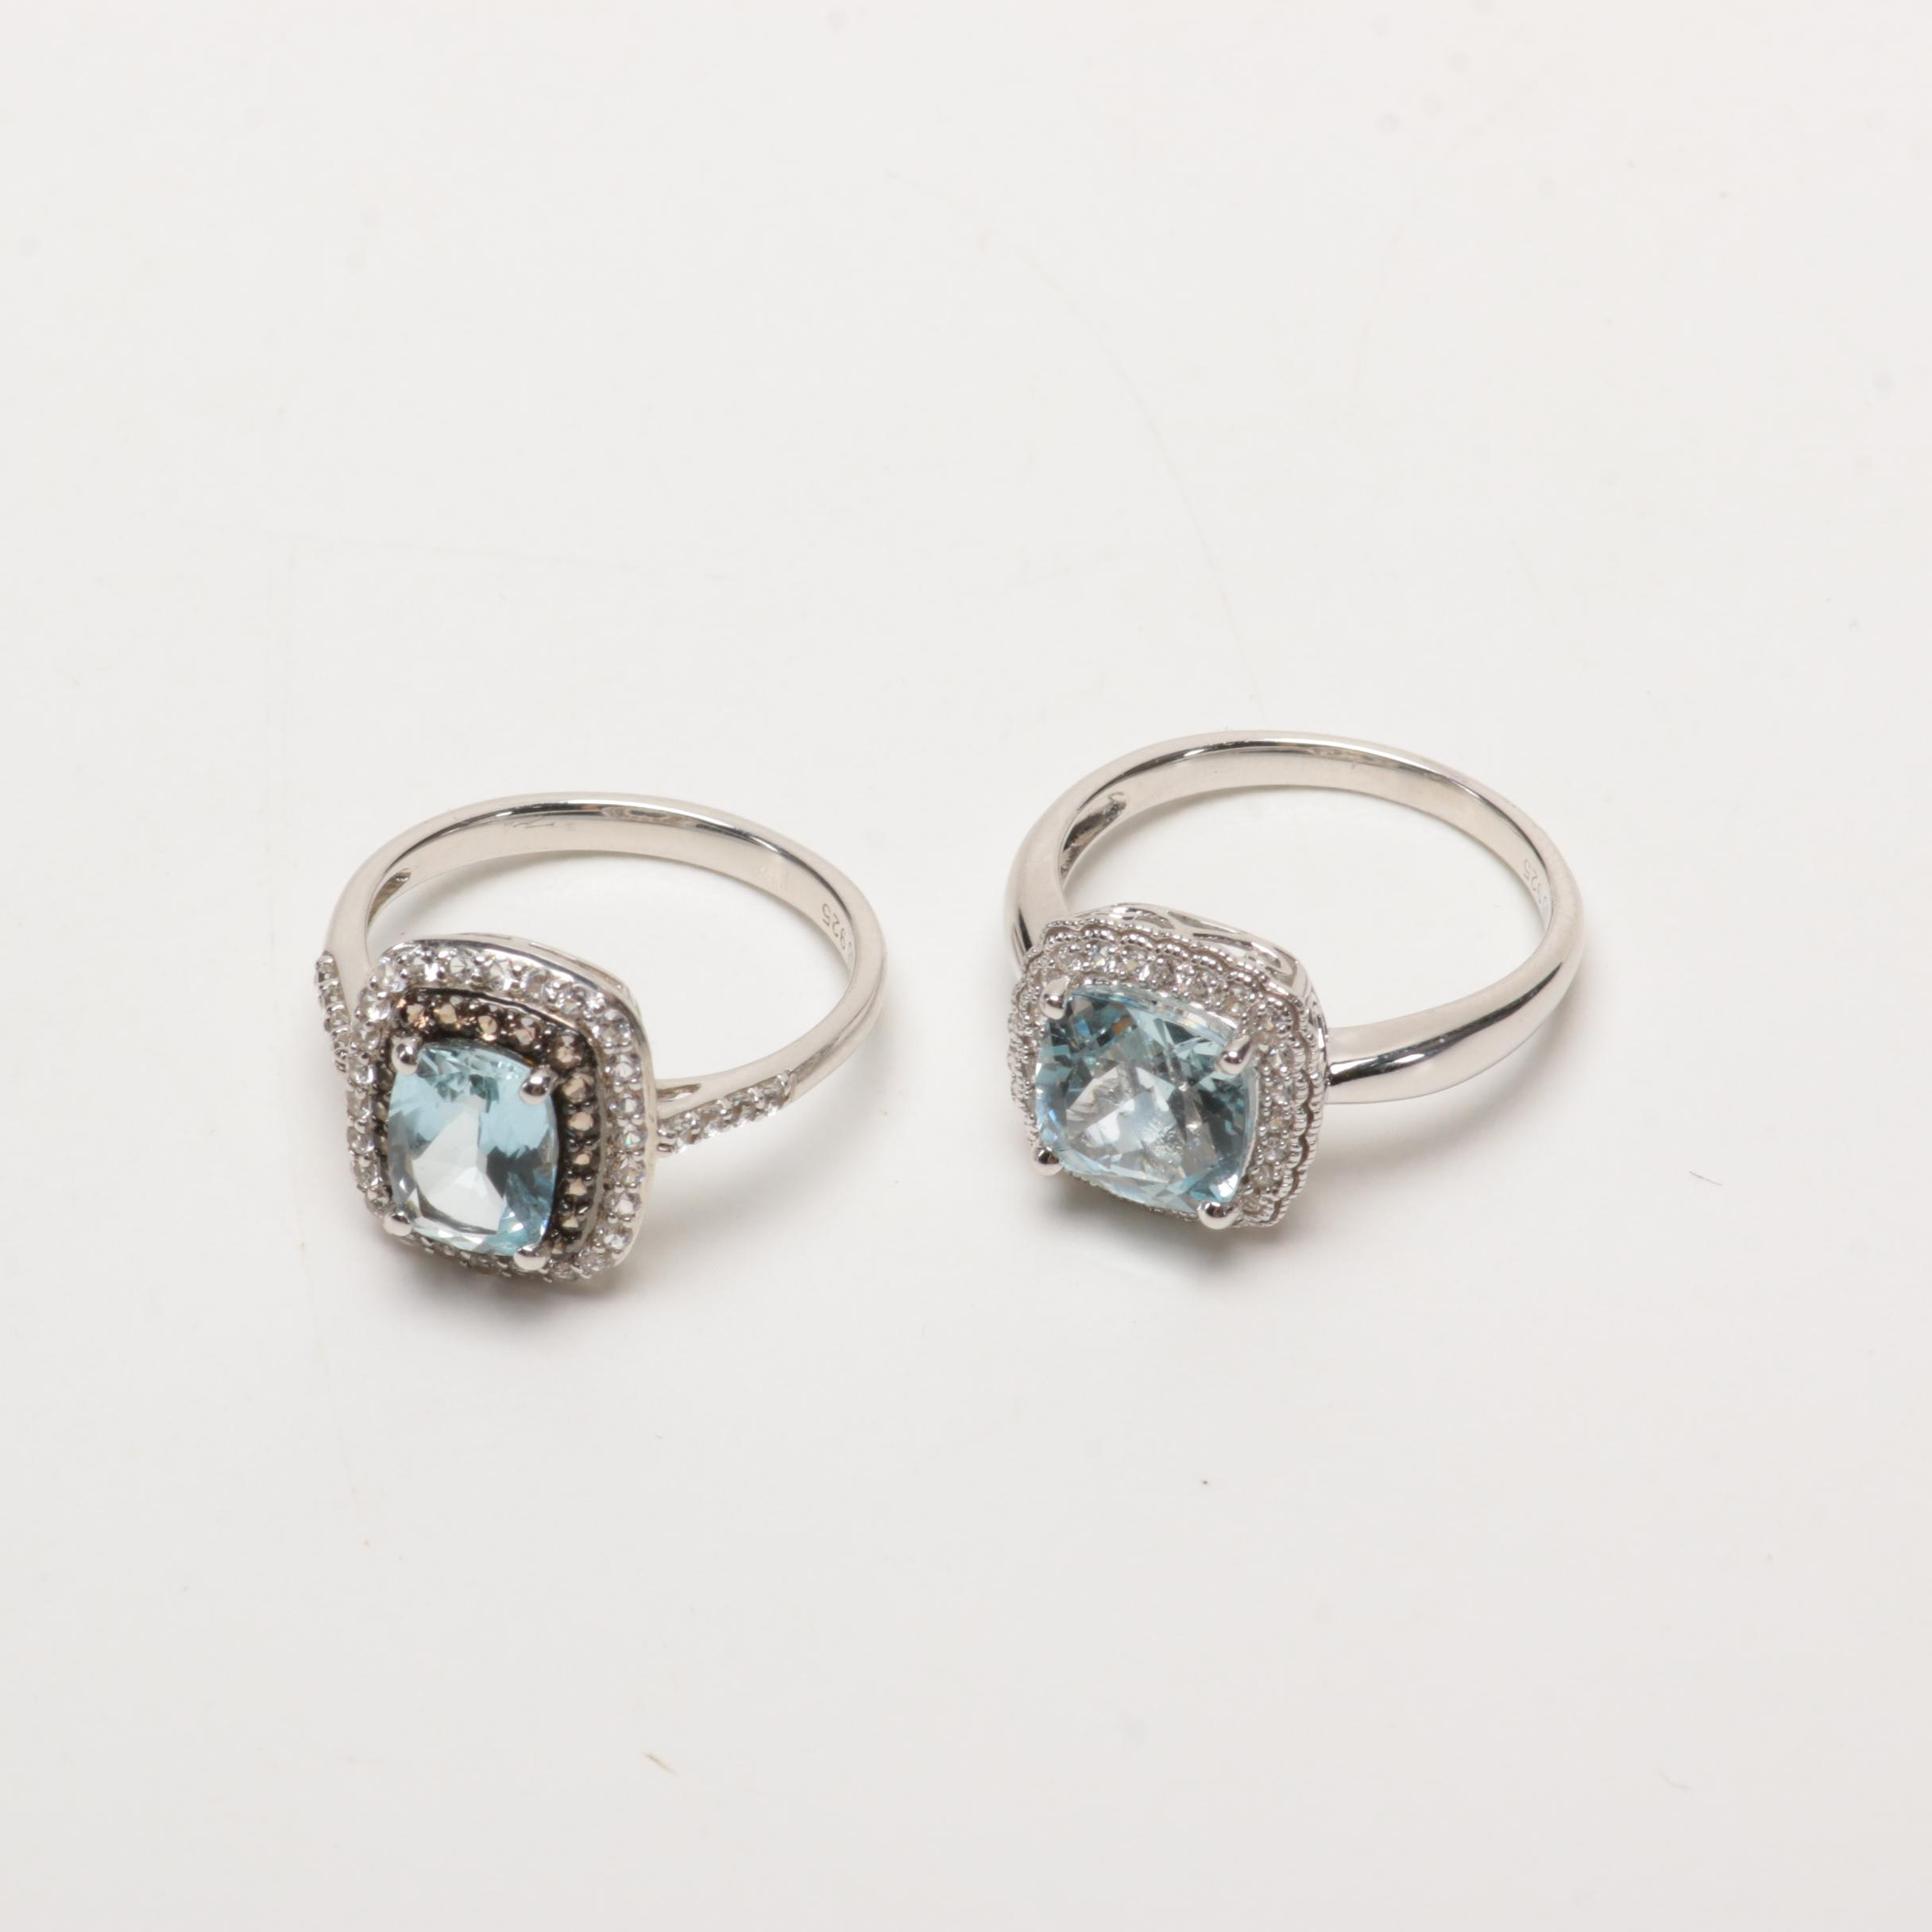 Sterling Silver and Aquamarine Rings